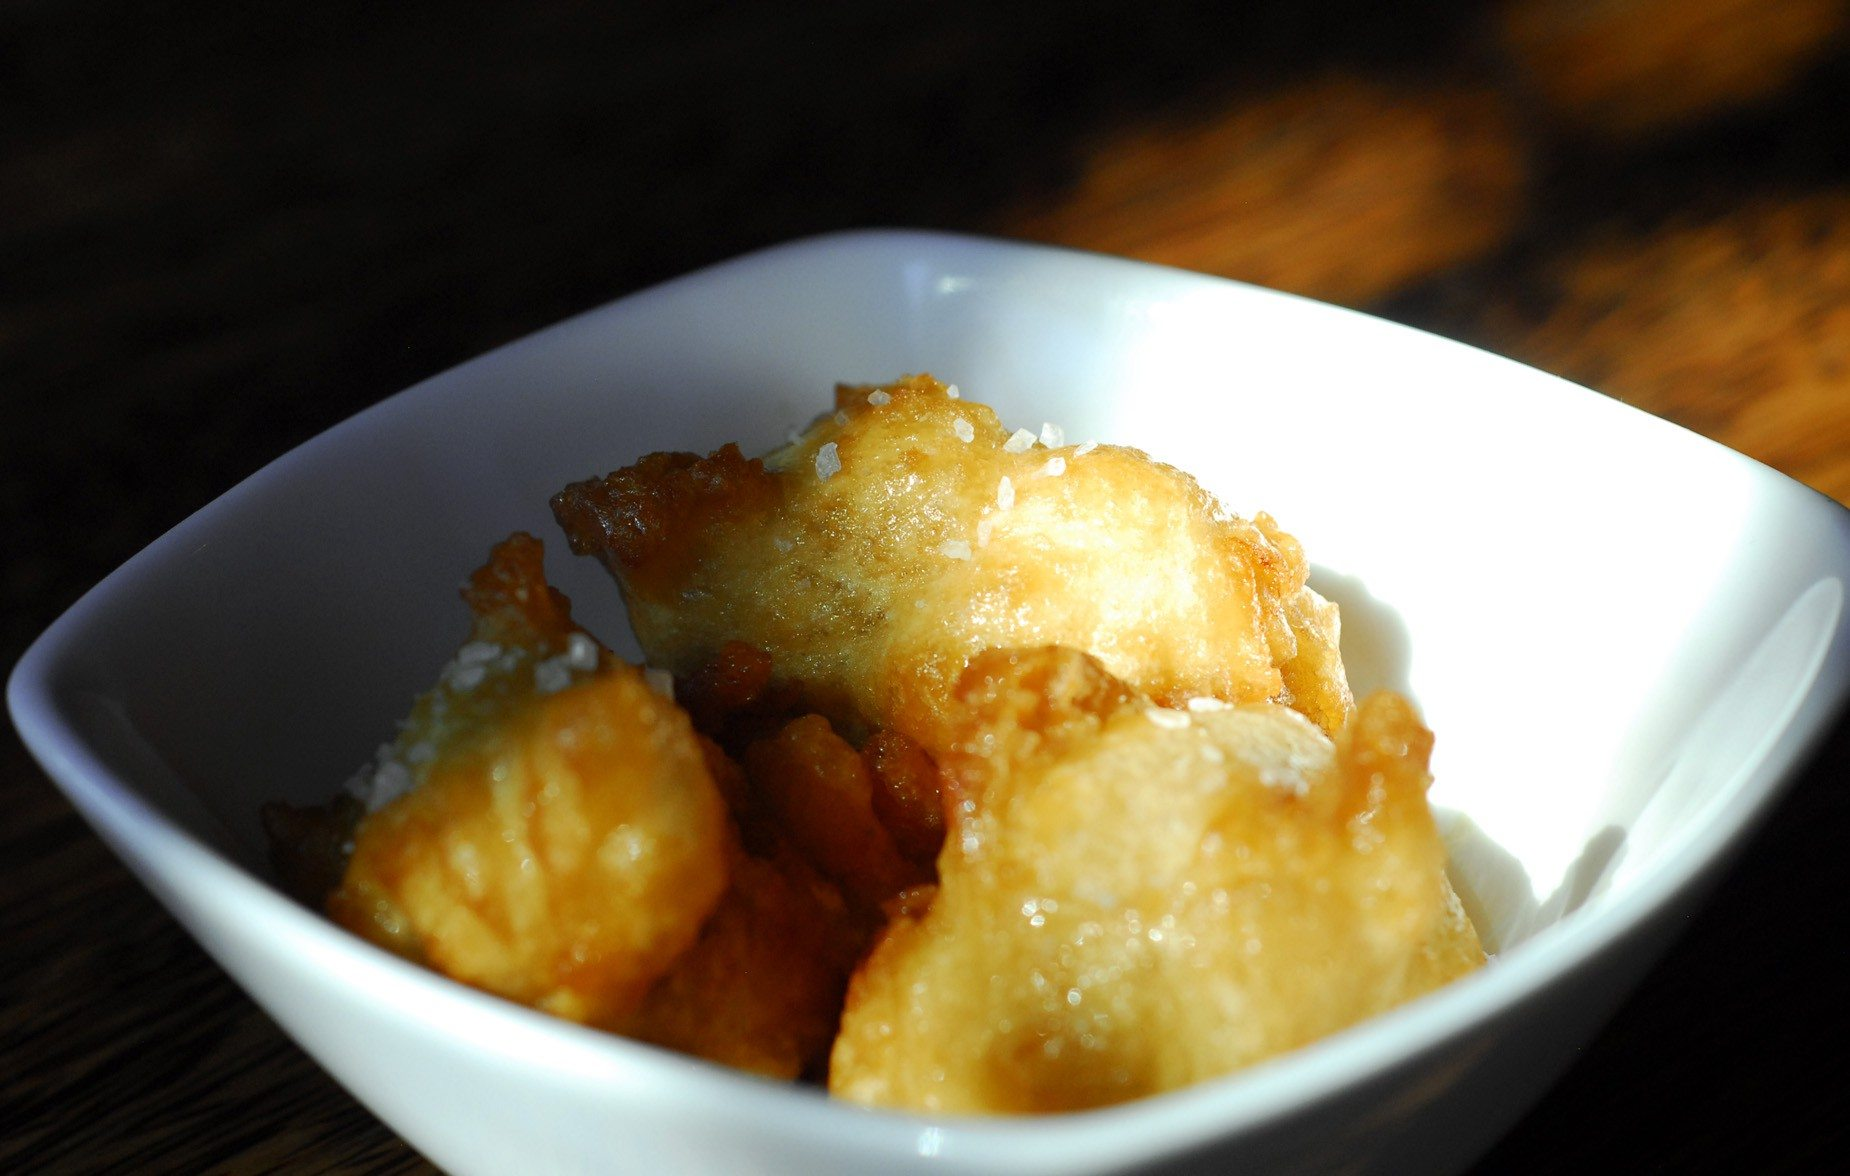 Evan DuCharme/Special to The S.F. ExaminerThe fried macaroni and cheese balls at Folsom Street pub The Willows are both creamy and crunchy.